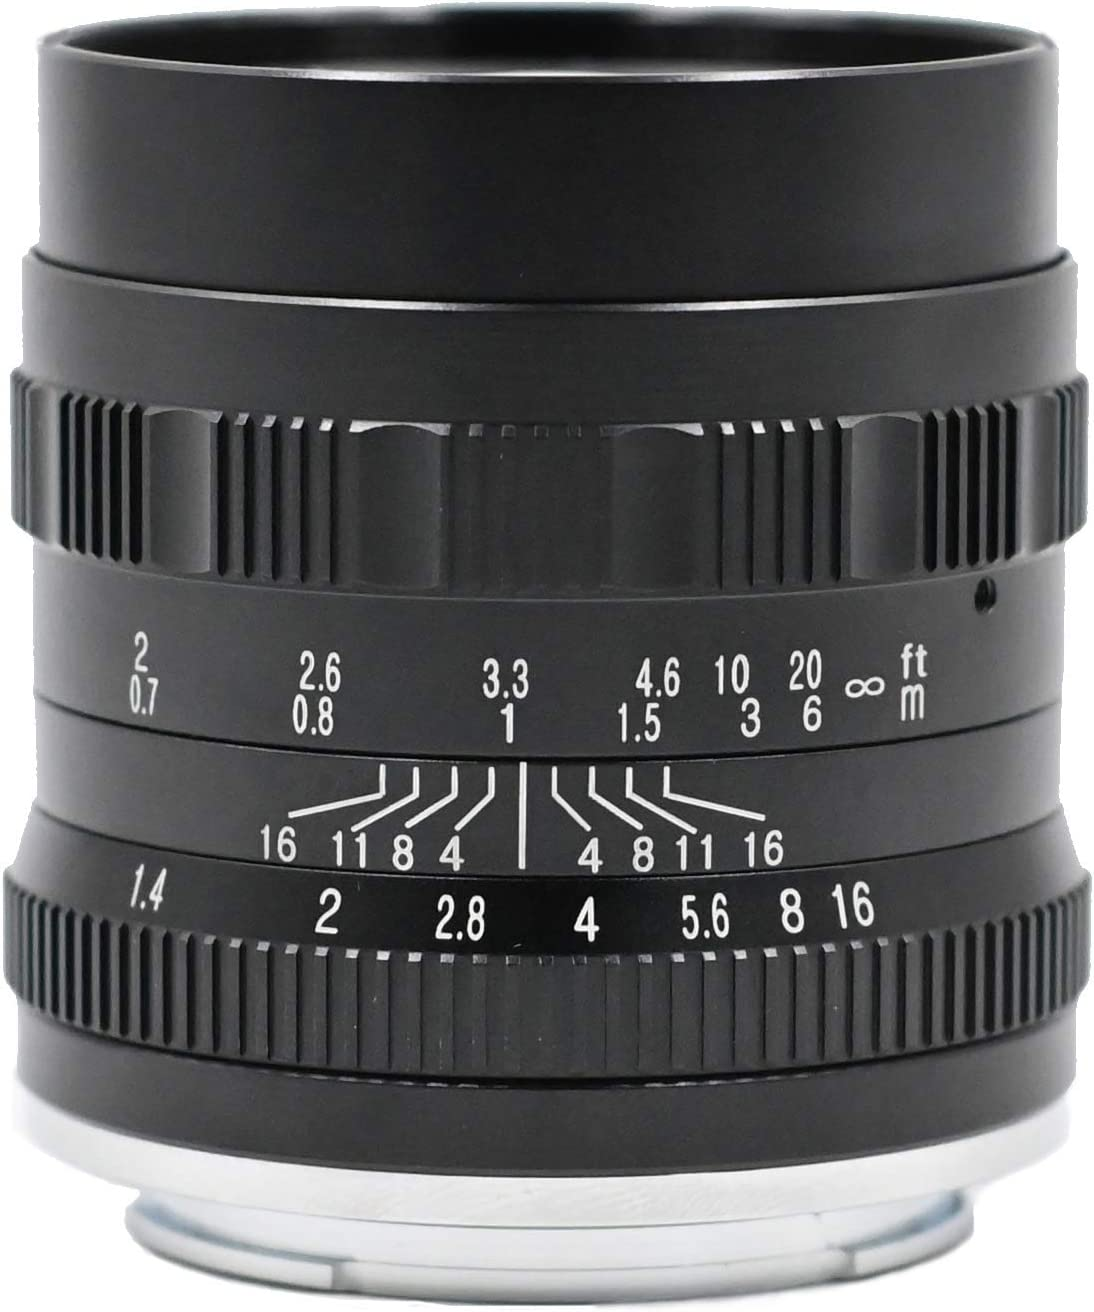 HUABAN 50mm F1.4 Large Aperture Manual Prime Lens for Sony E Mount ...